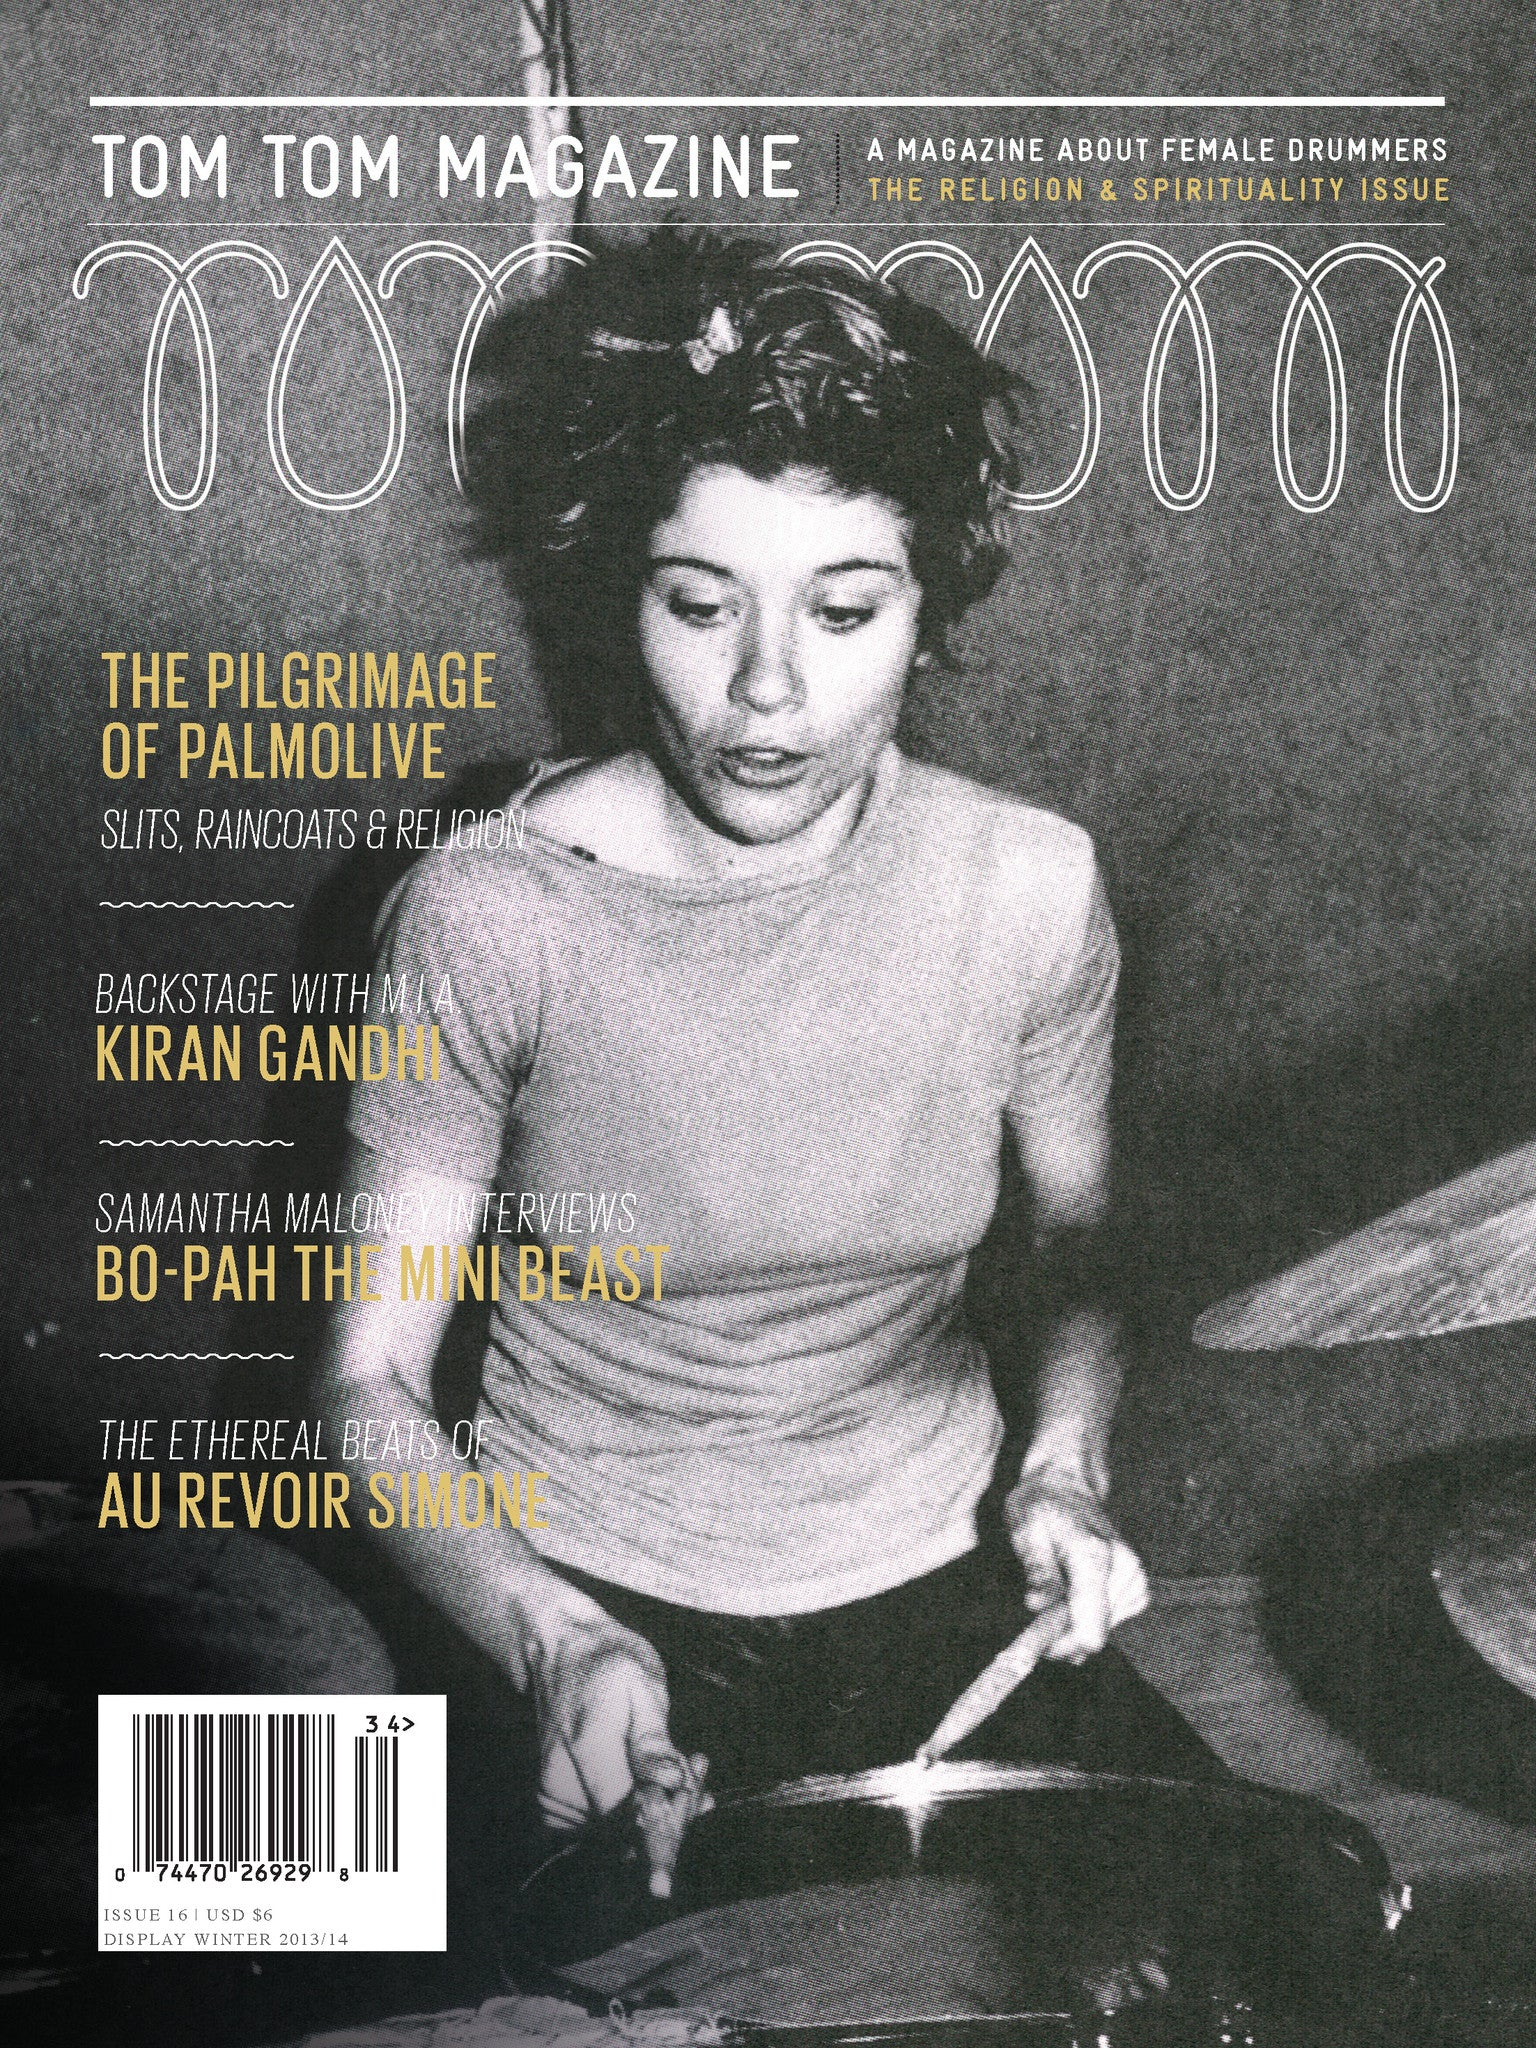 Tom Tom Magazine Issue 16: Religion and Spirituality - Drummers | Music | Feminism: Shop Tom Tom